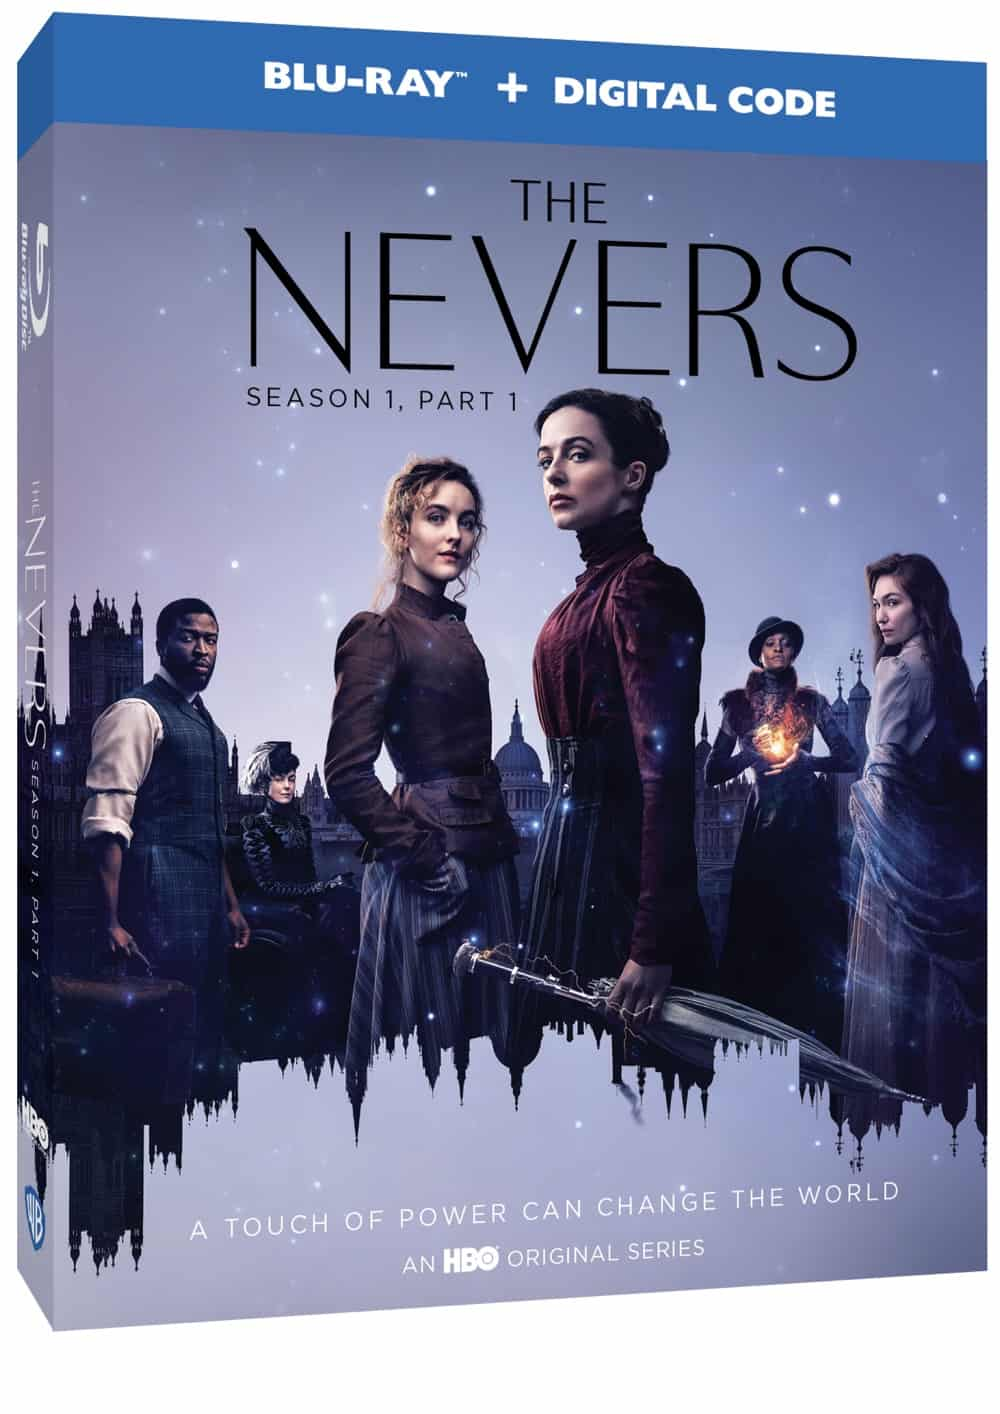 The Nevers S1 Pt 1 BD